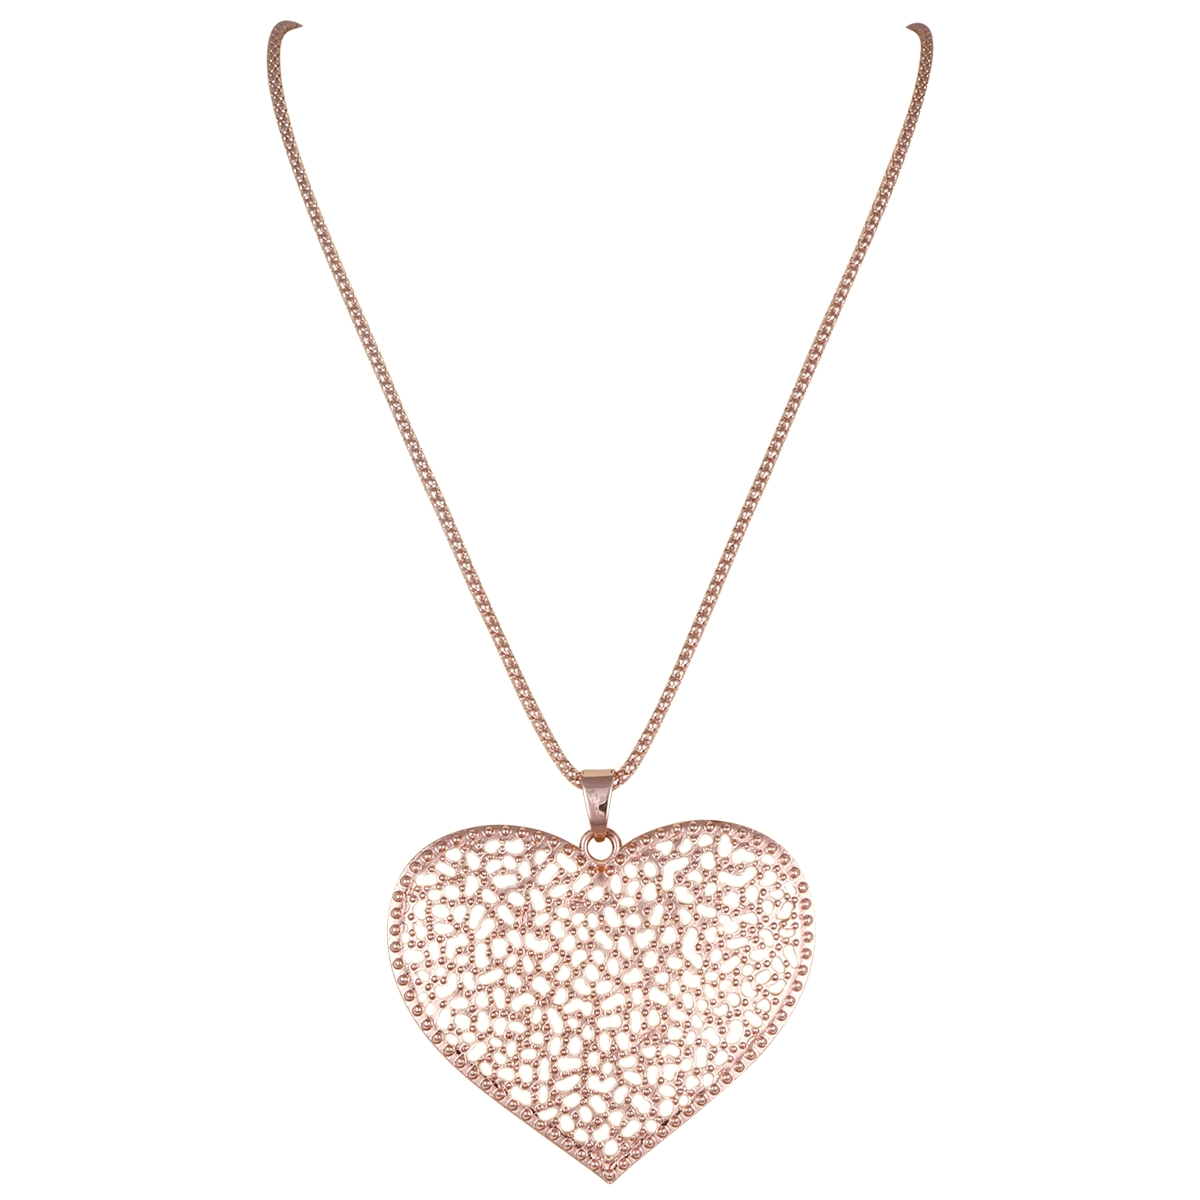 Heart Shaped Rose Gold Necklace